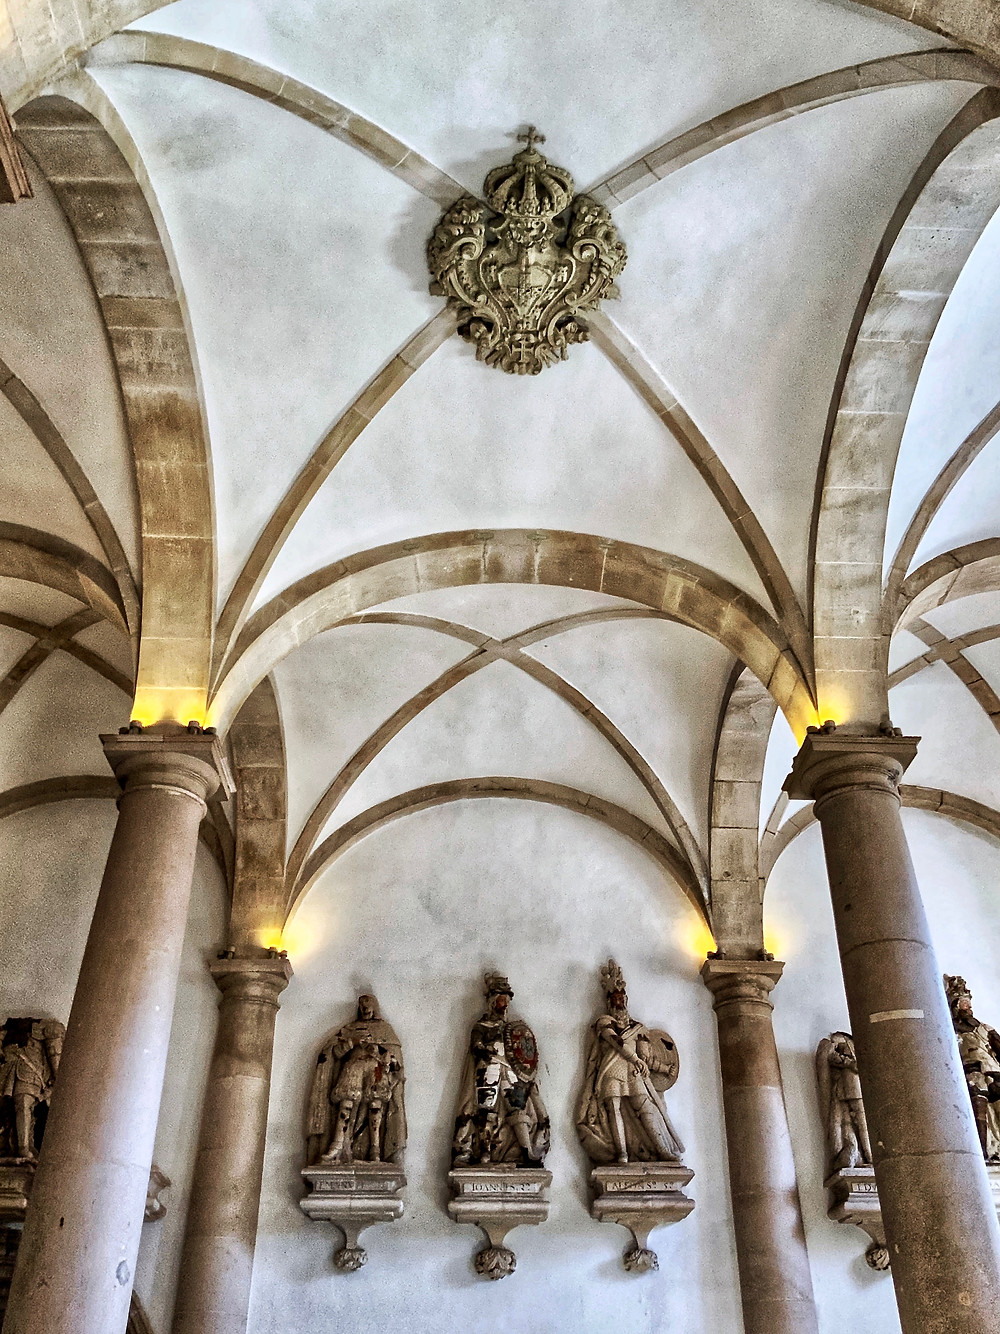 vaulted ceilings of the Kings Hall in Alcobaça monastery